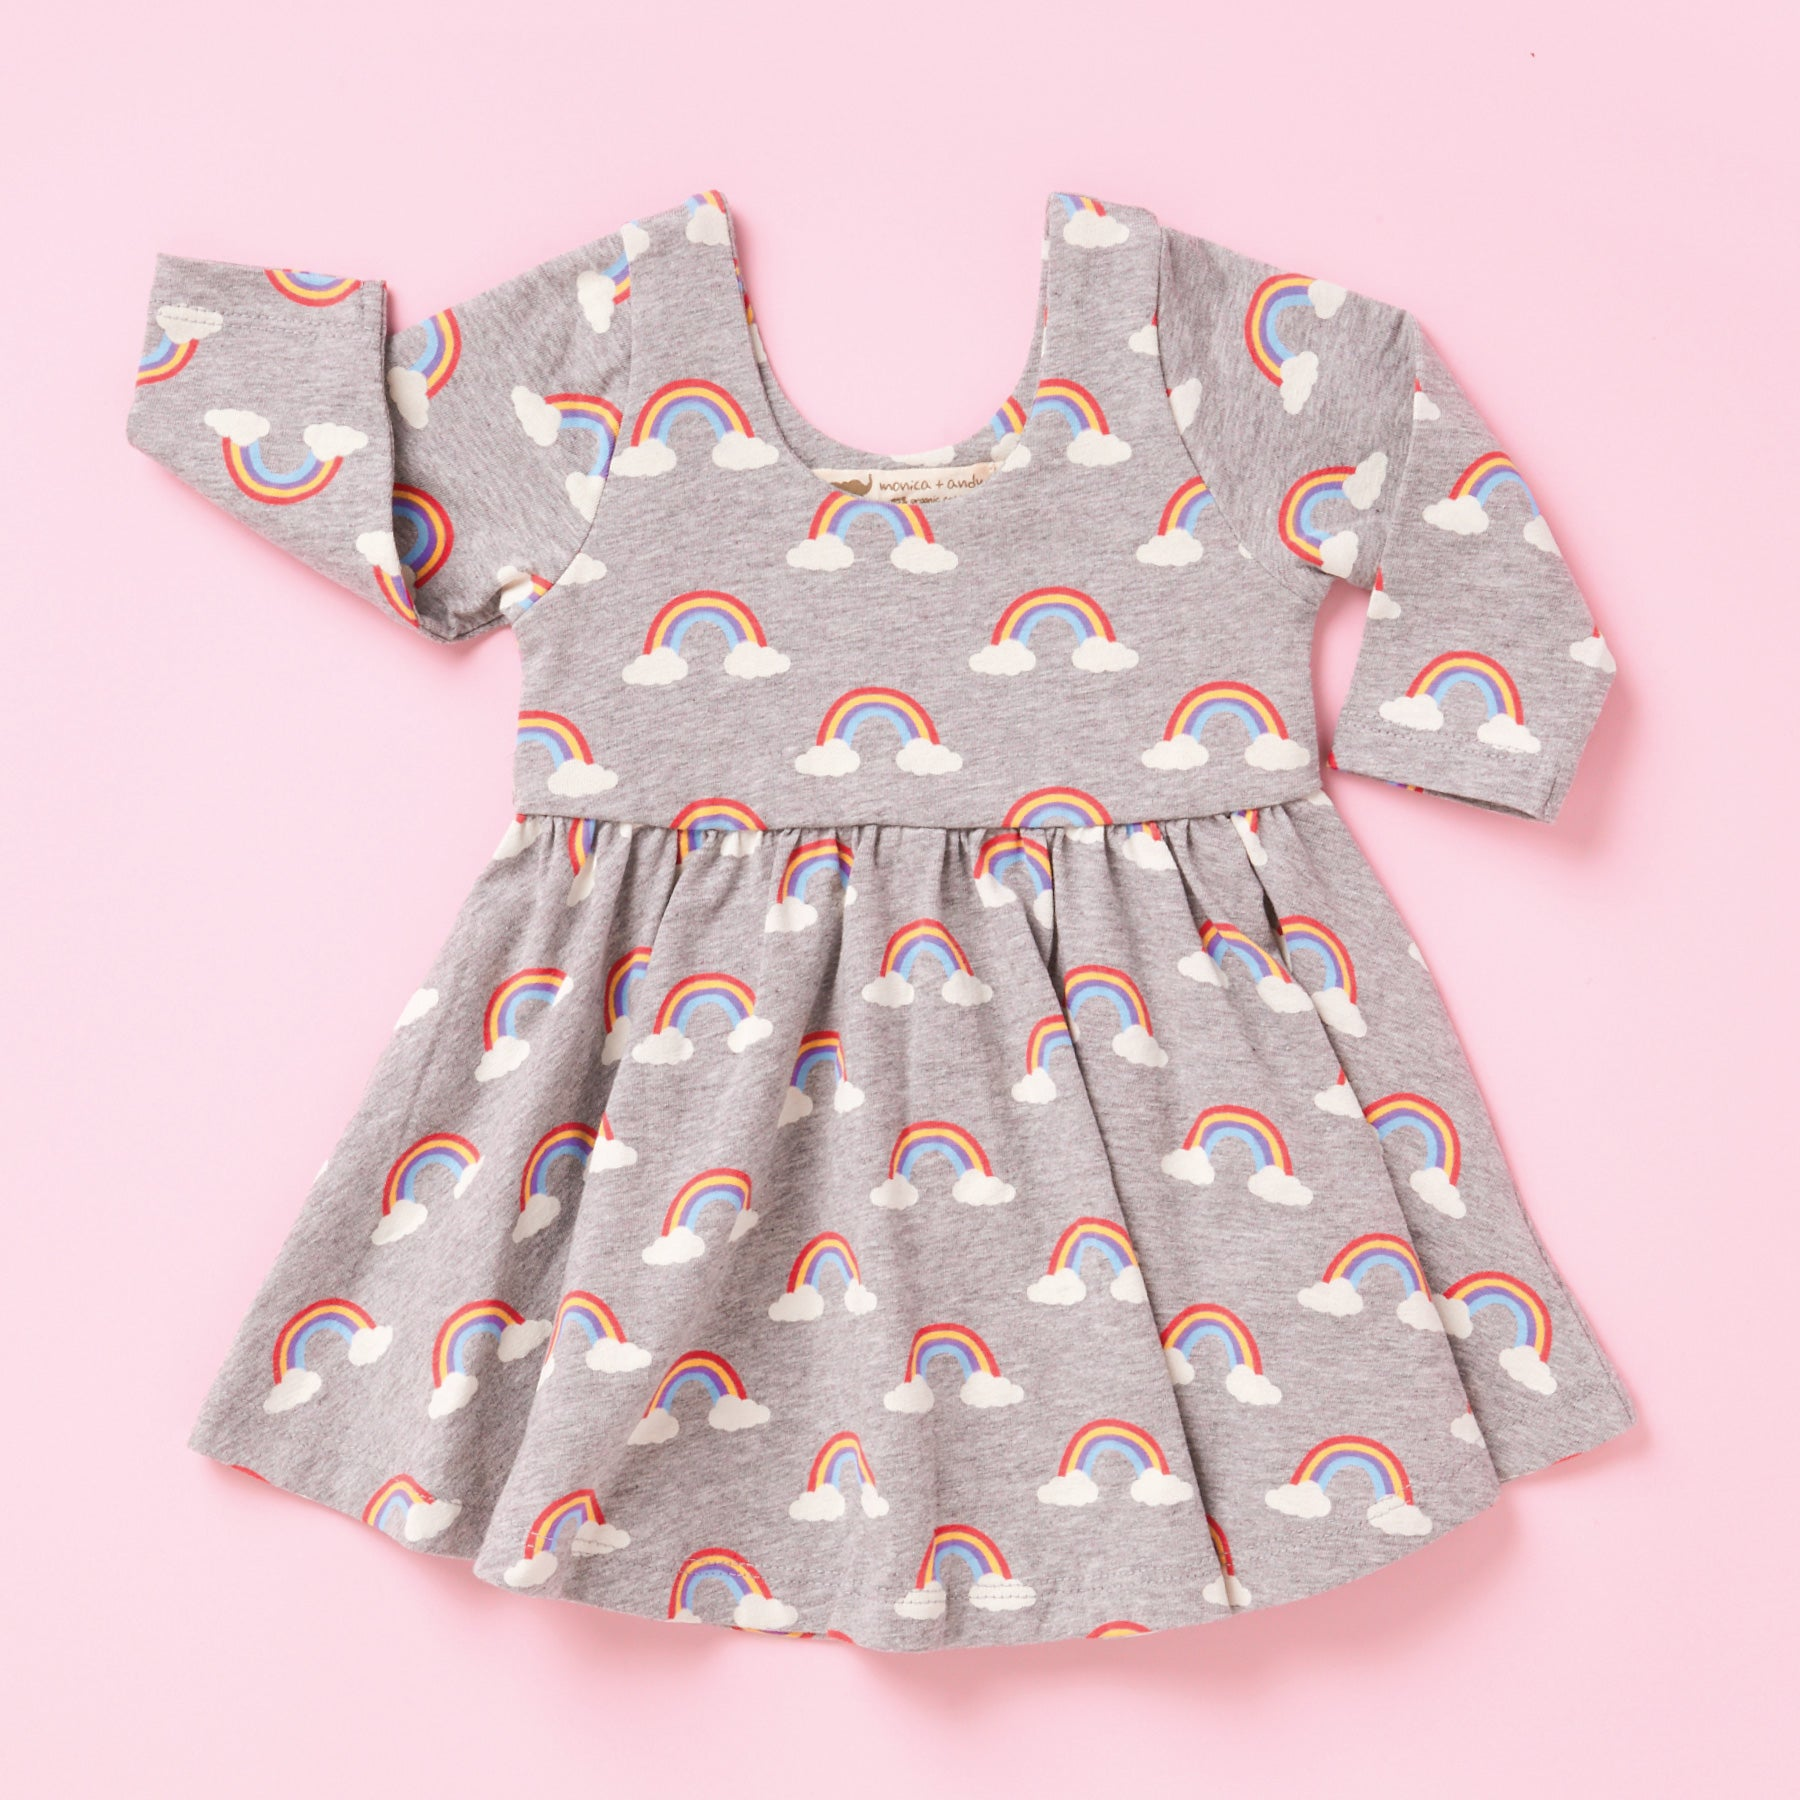 dress with rainbow skies print on pink background